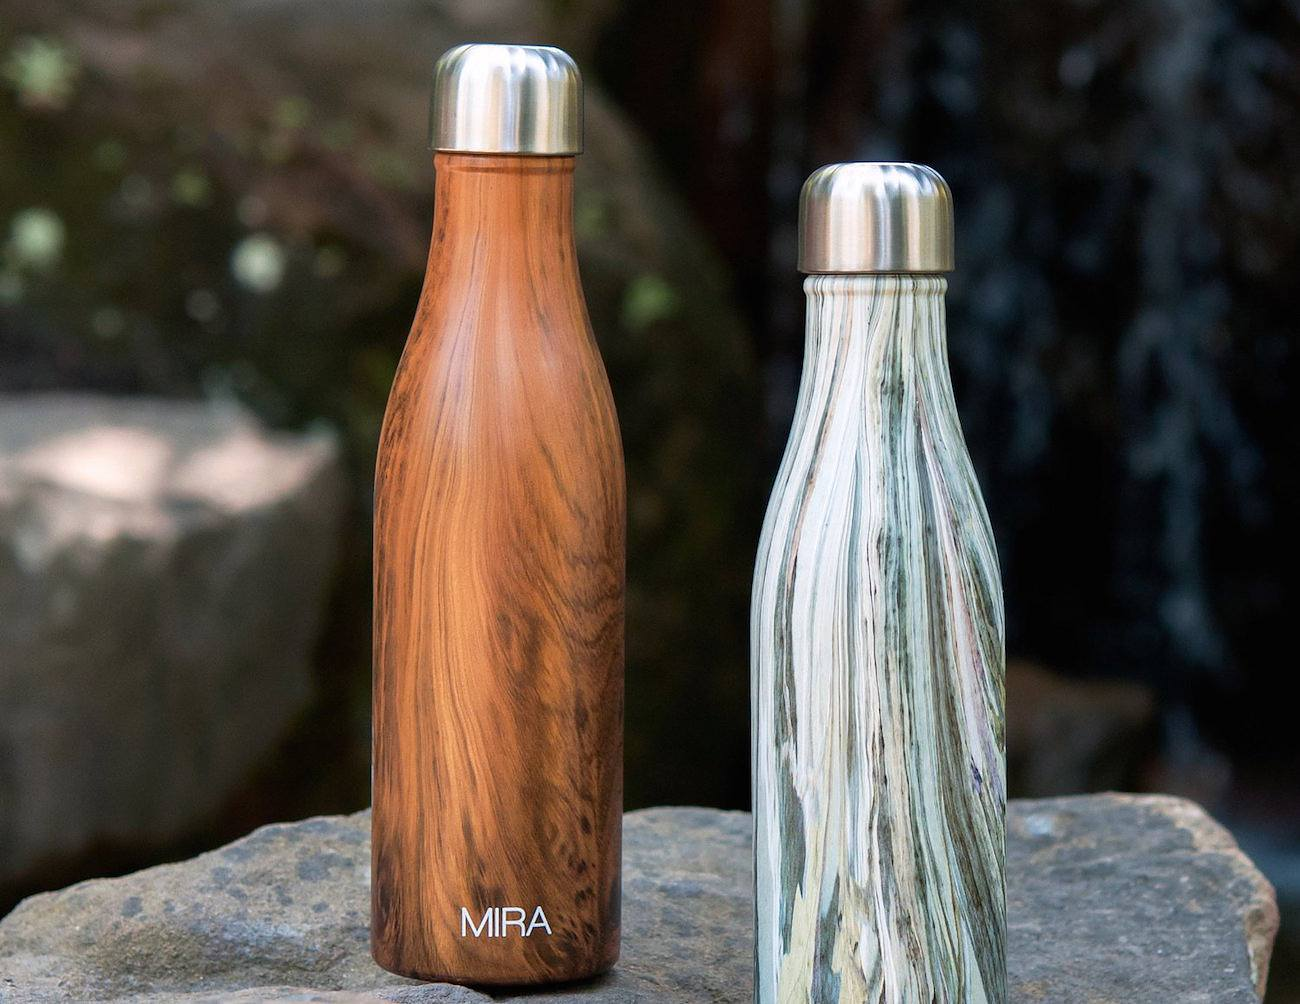 MIRA Insulated Stainless Steel Water Bottle